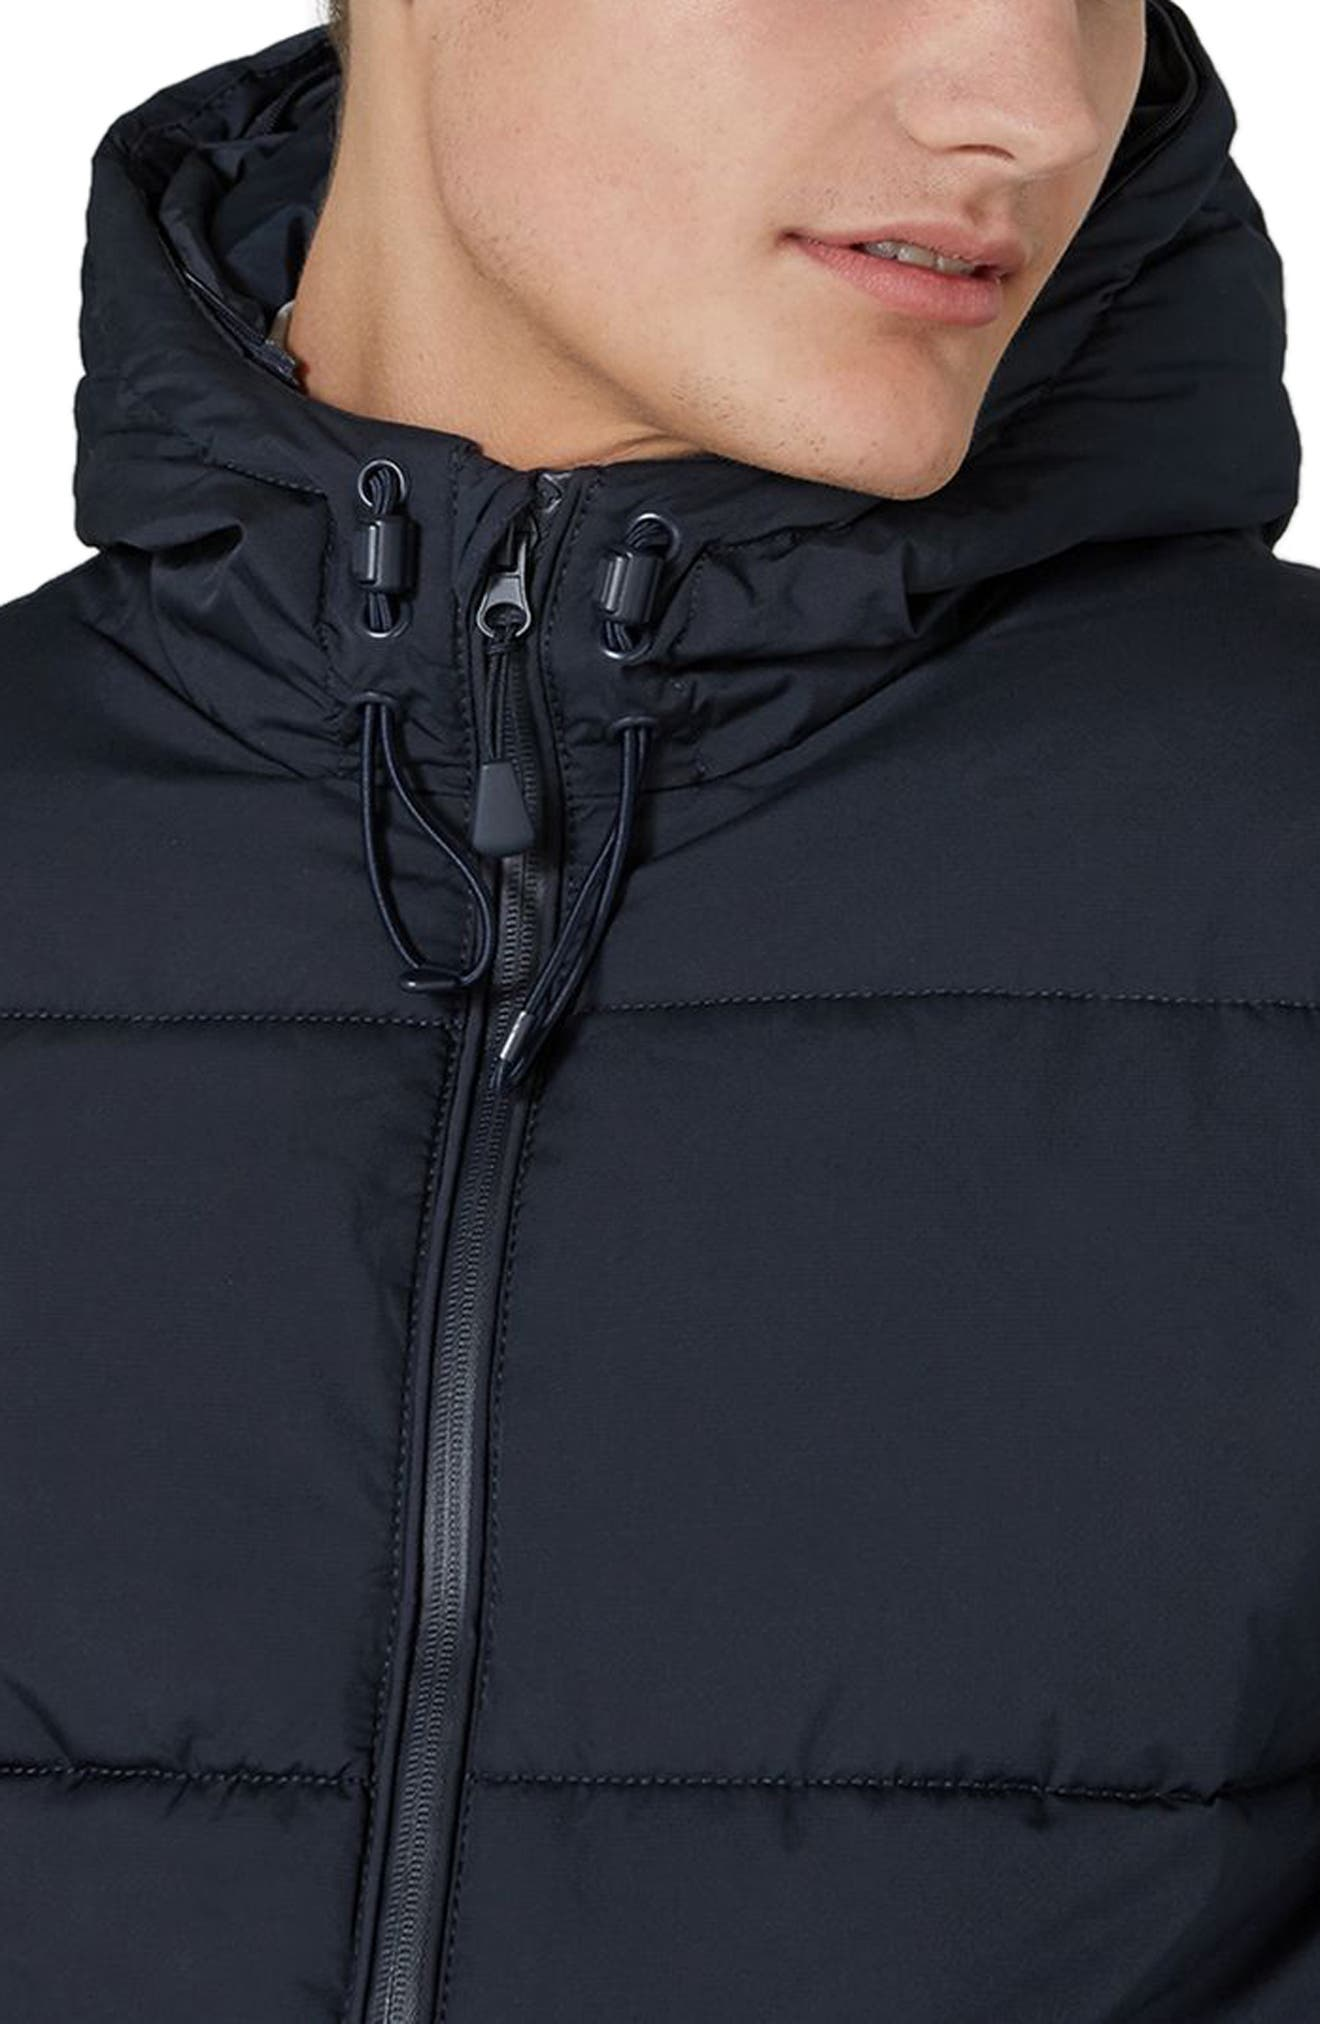 Maguire Hooded Puffer Coat with Faux Fur Trim,                             Alternate thumbnail 3, color,                             410